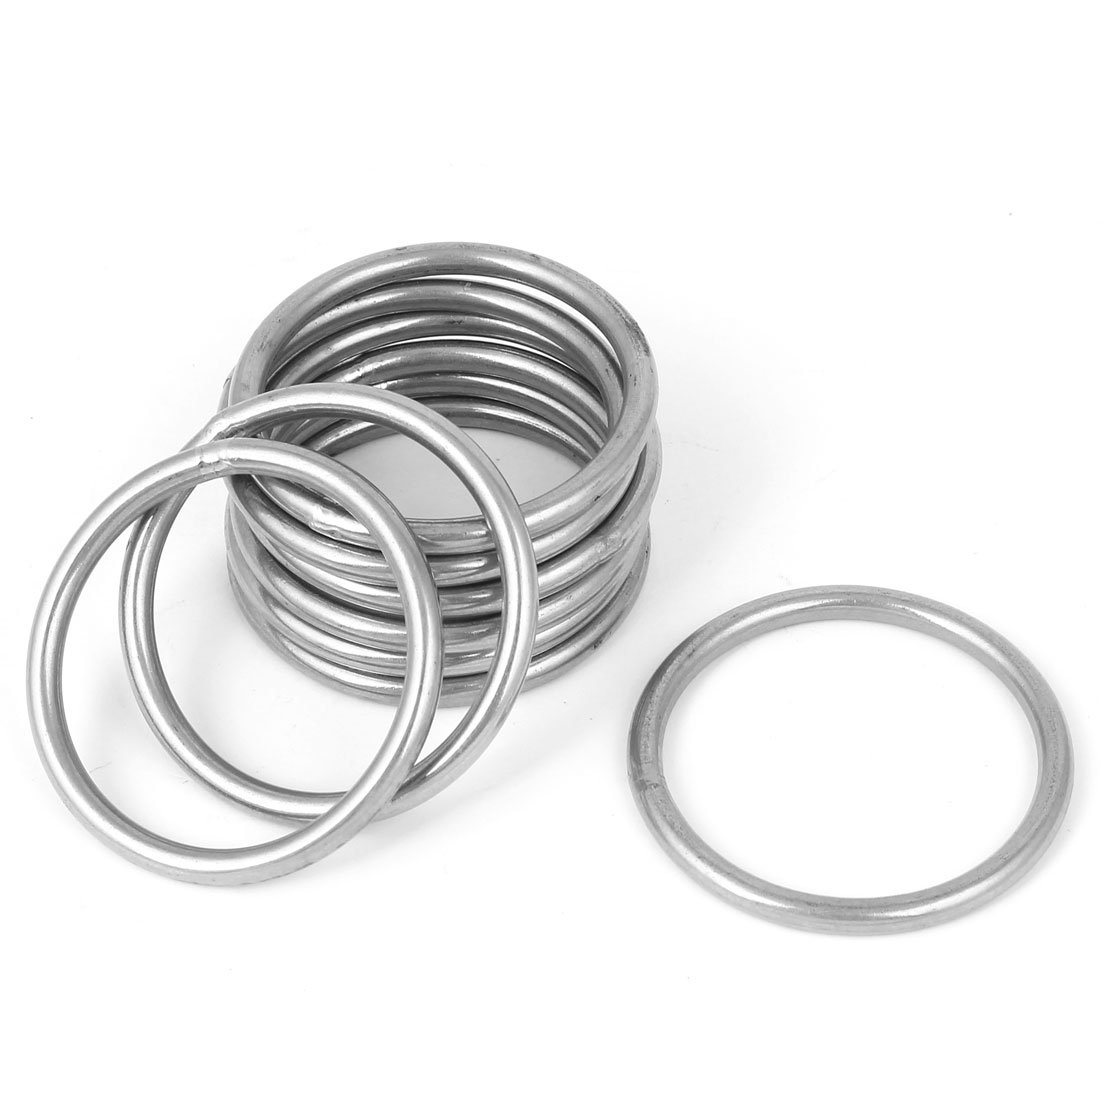 Uxcell a16022600ux0043 M5 x 60mm 201 Stainless Steel Webbing Strapping Welded O Rings